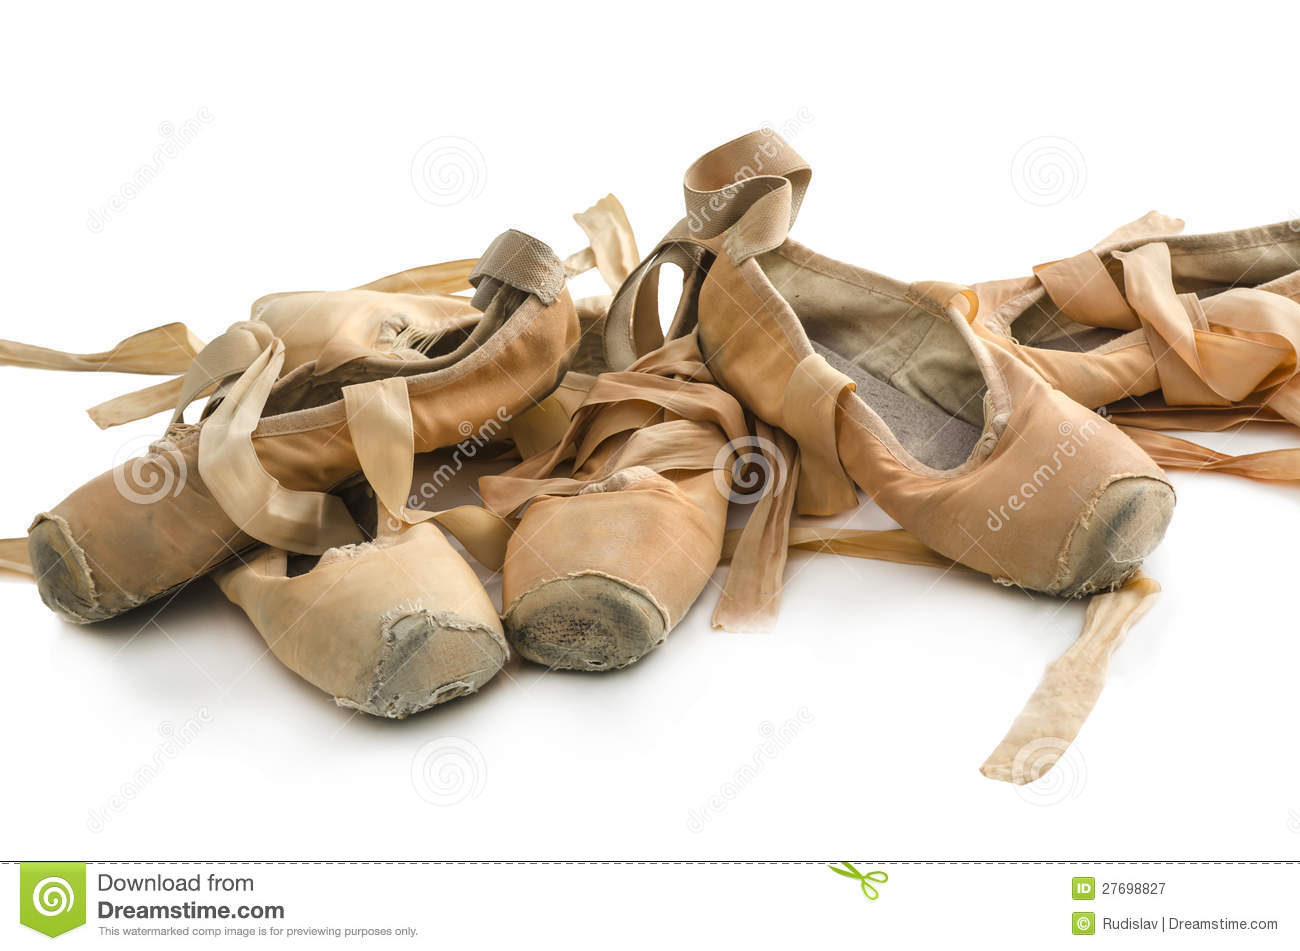 185 Old Used Ballet Shoes Photos - Free